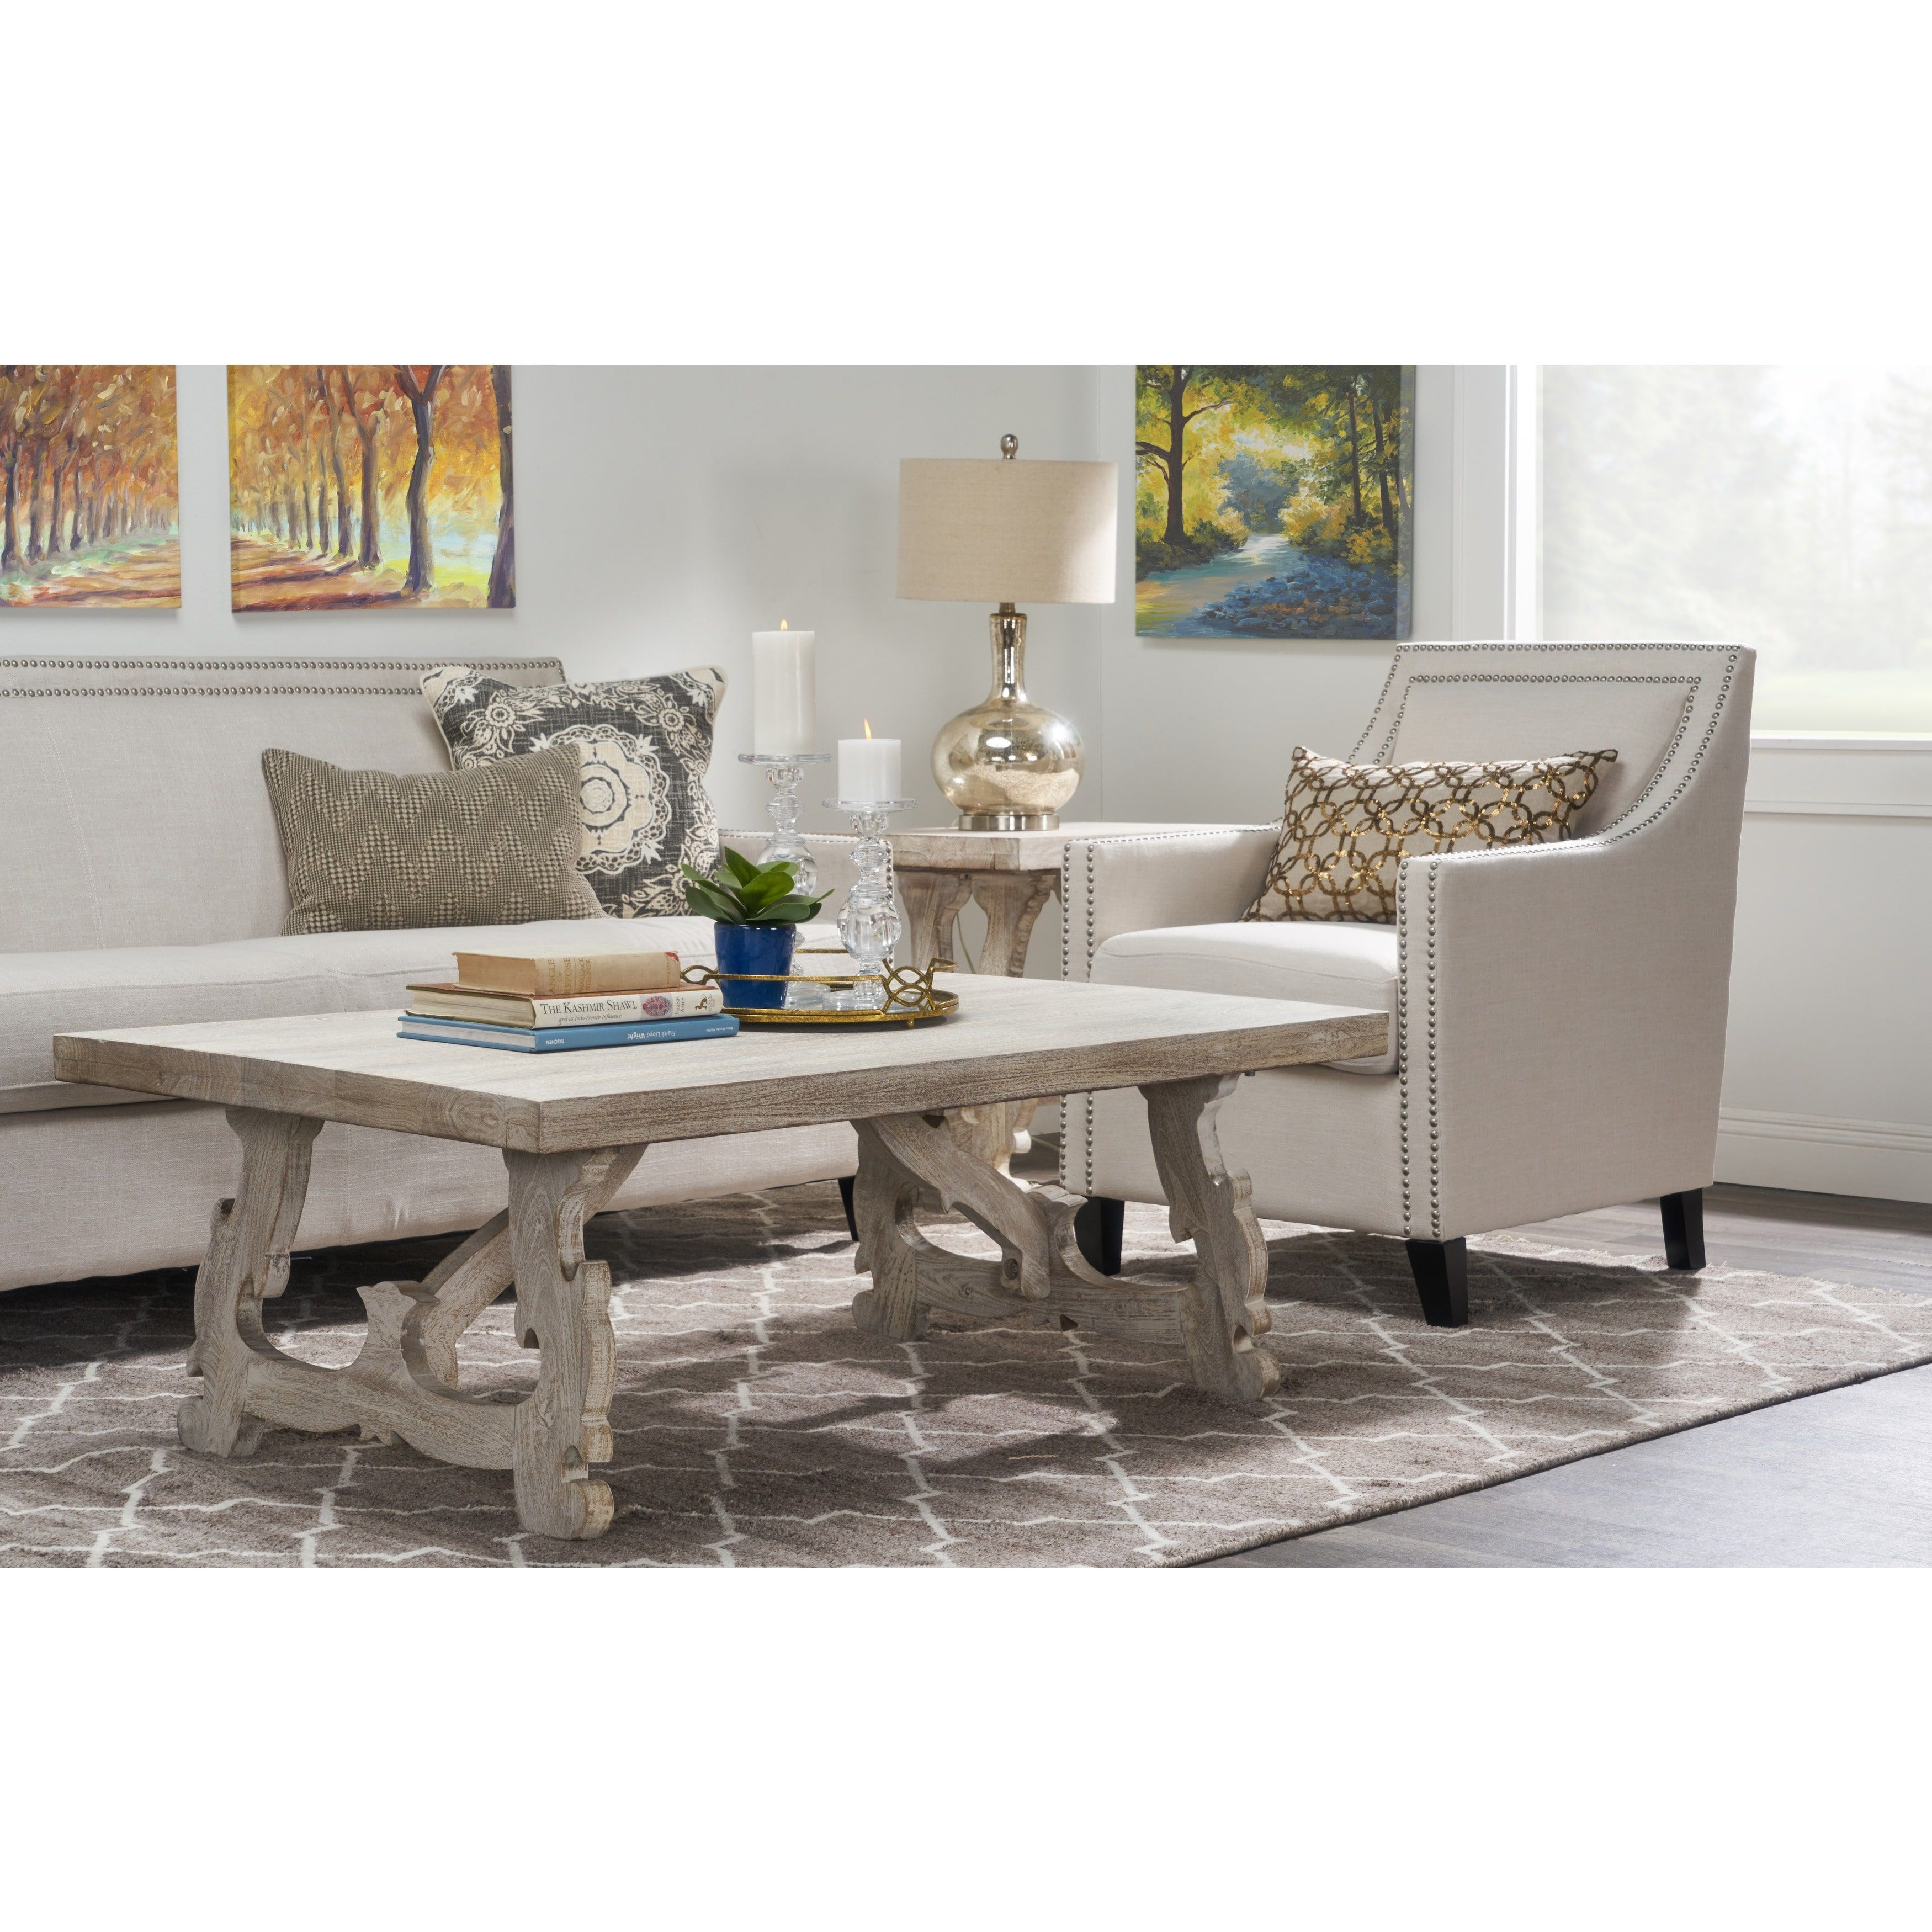 Best Beige Cream Off White White Wood Coffee Tables 640 x 480